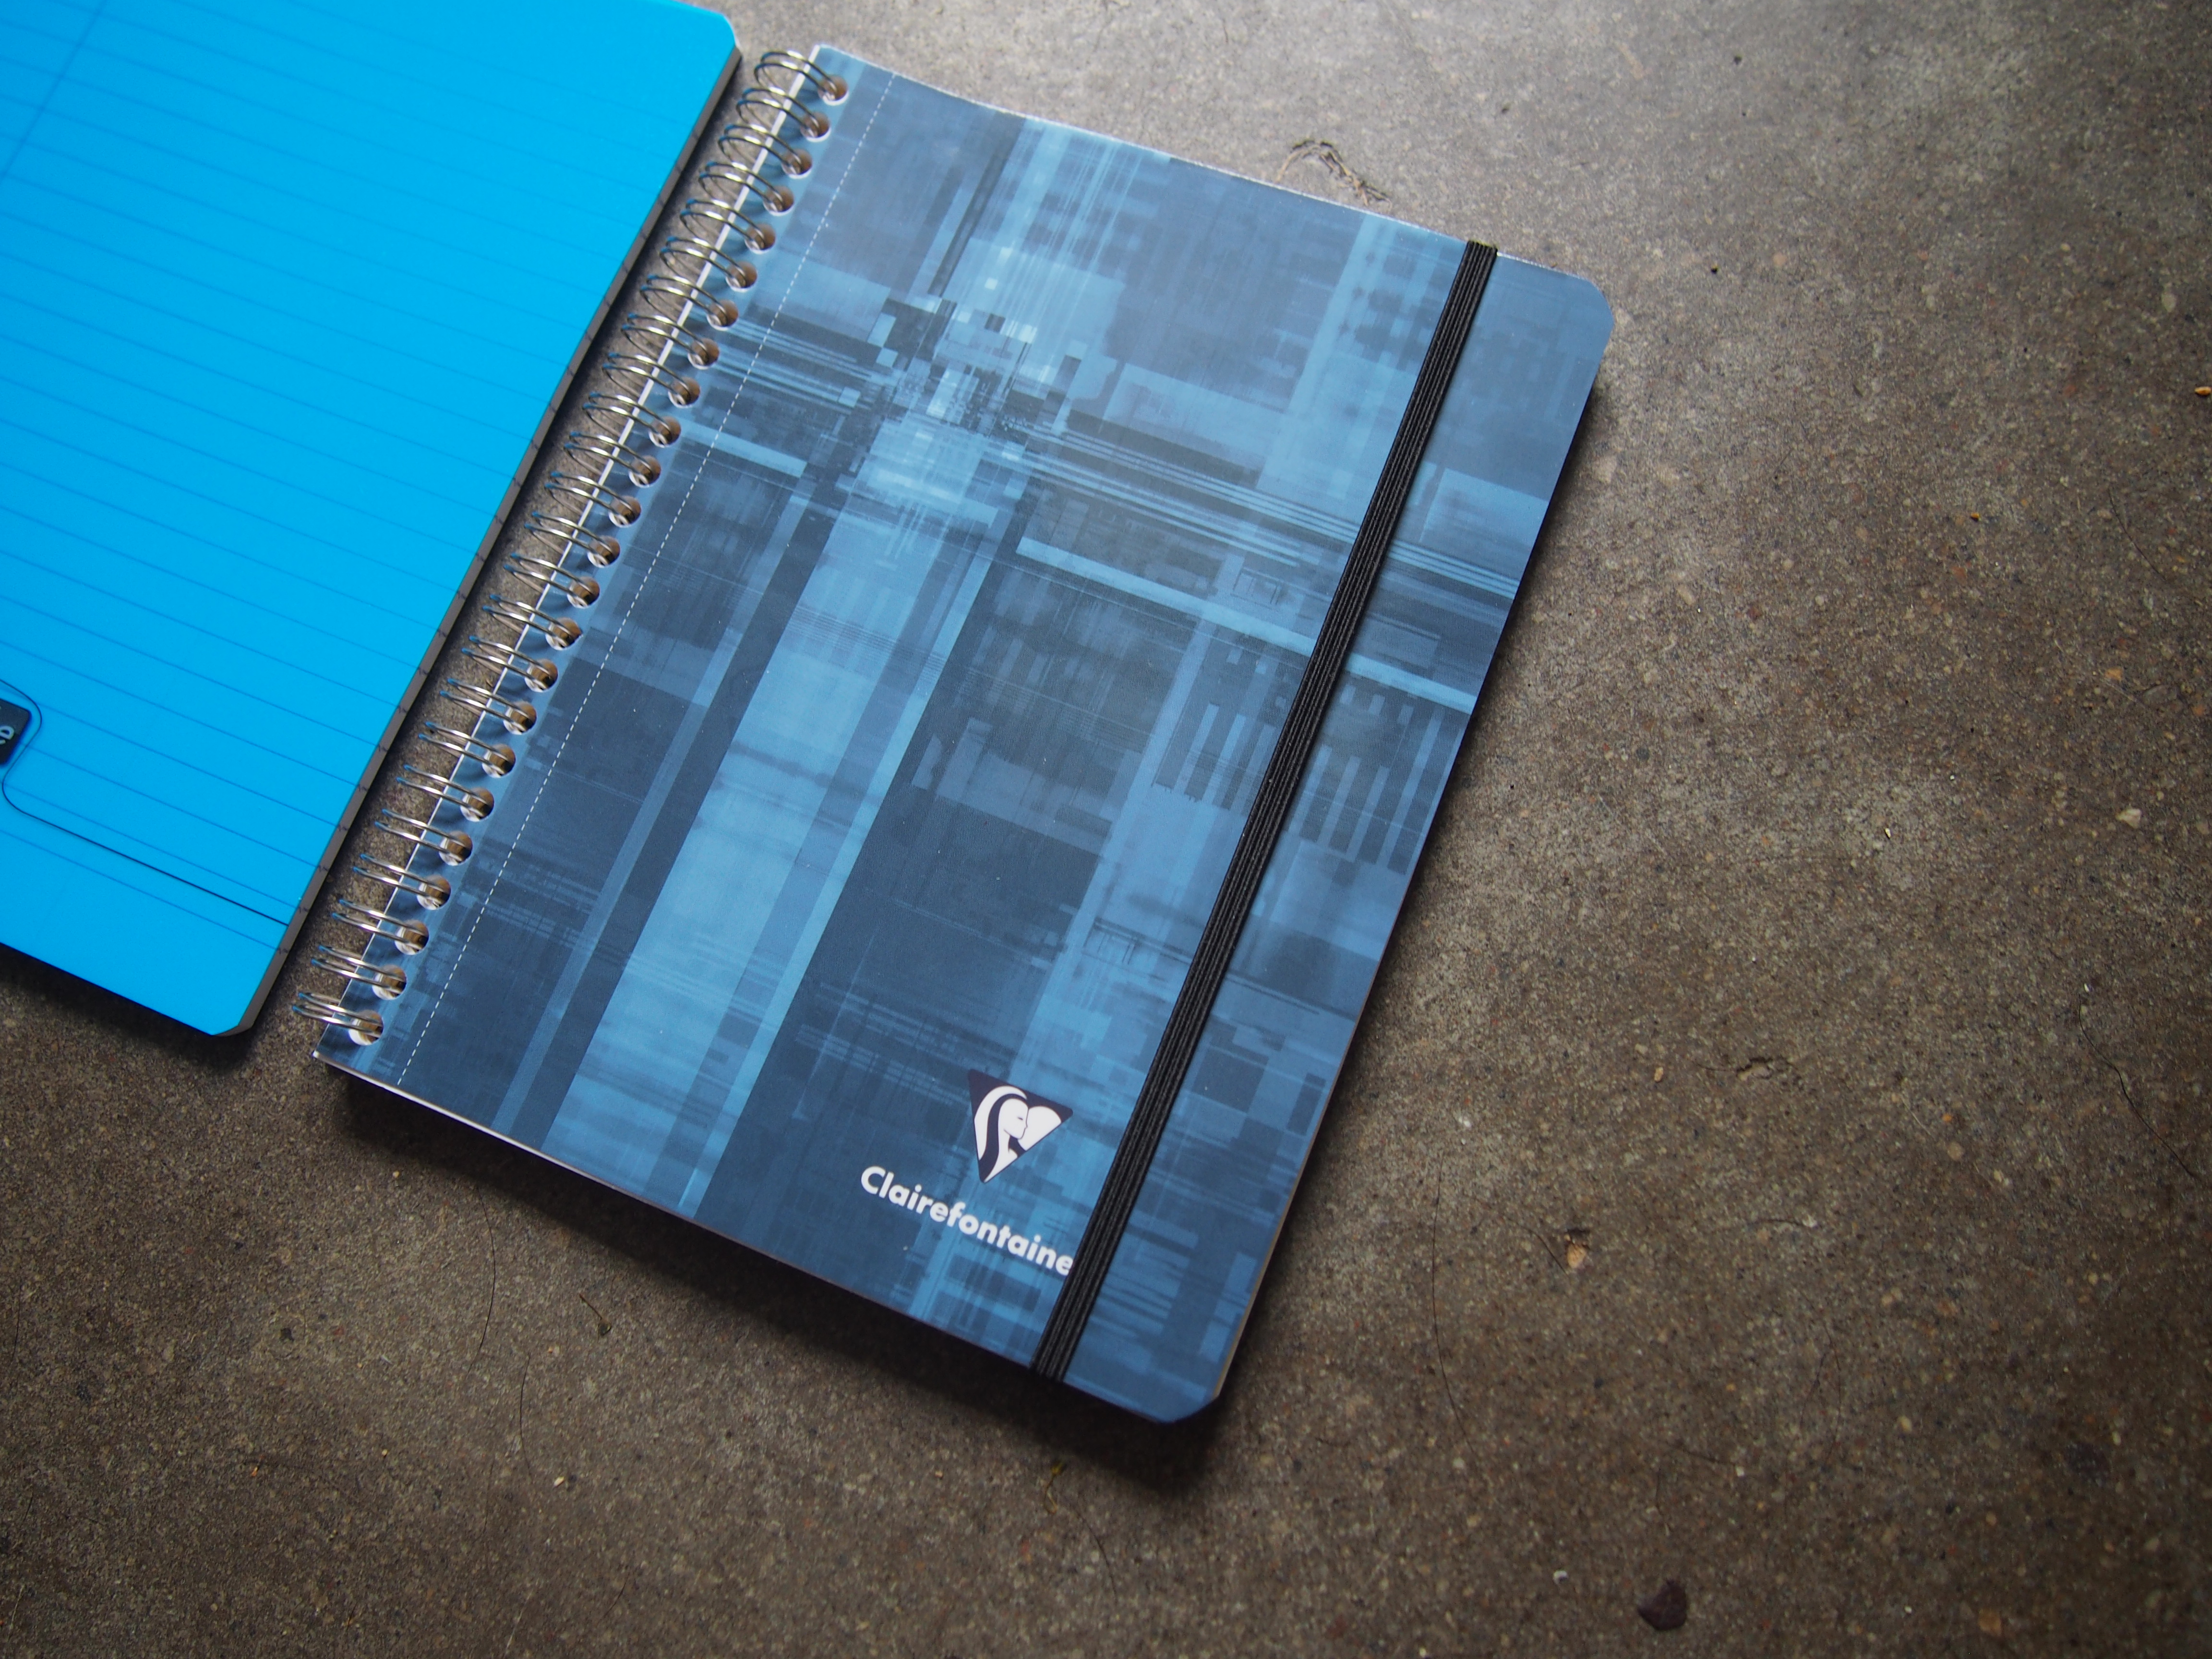 Clairefontaine Pocket Notebooks A5 Toronto Canada Wonder Pens Blog wonderpens.ca